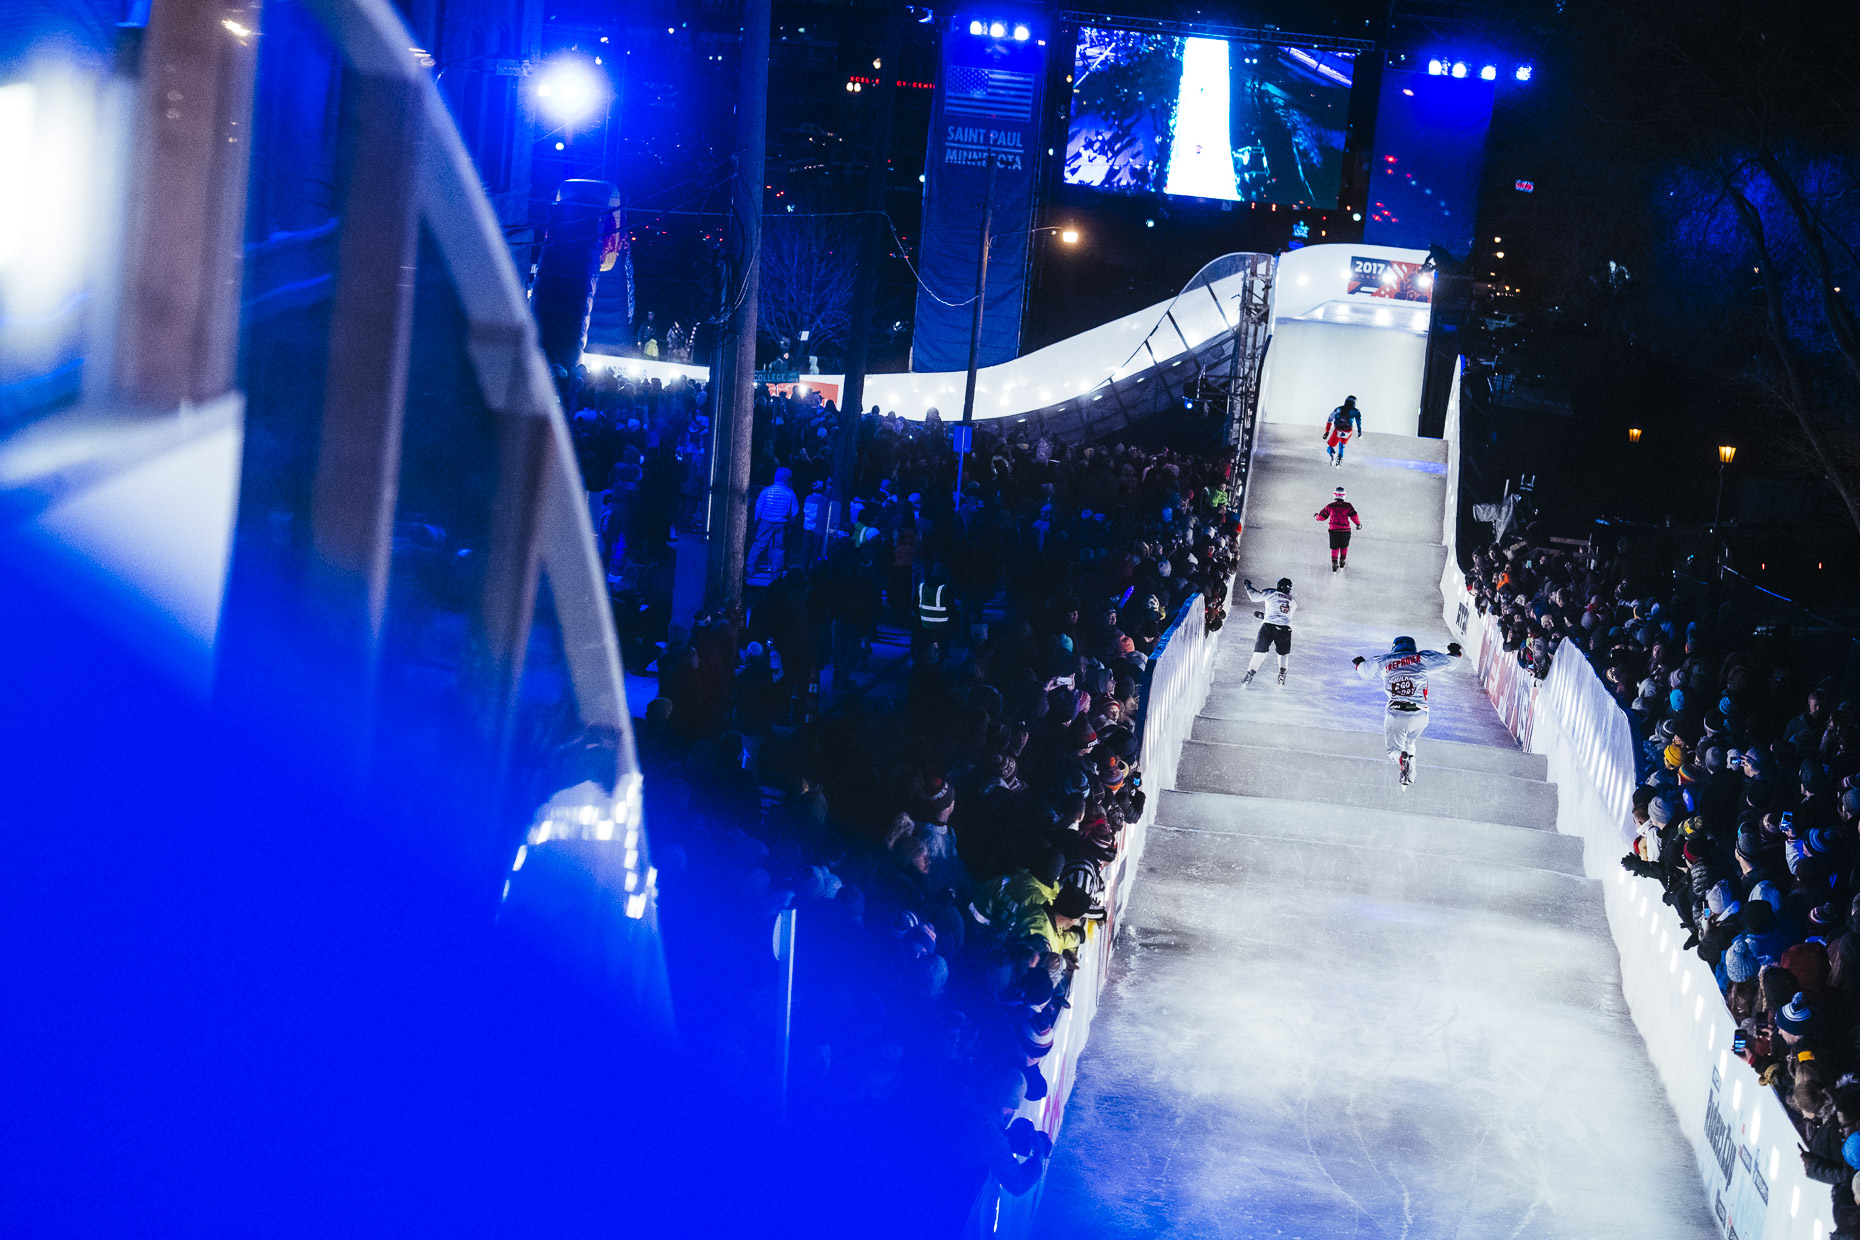 Red Bull Crashed Ice World Championship 2017 - Saint Paul